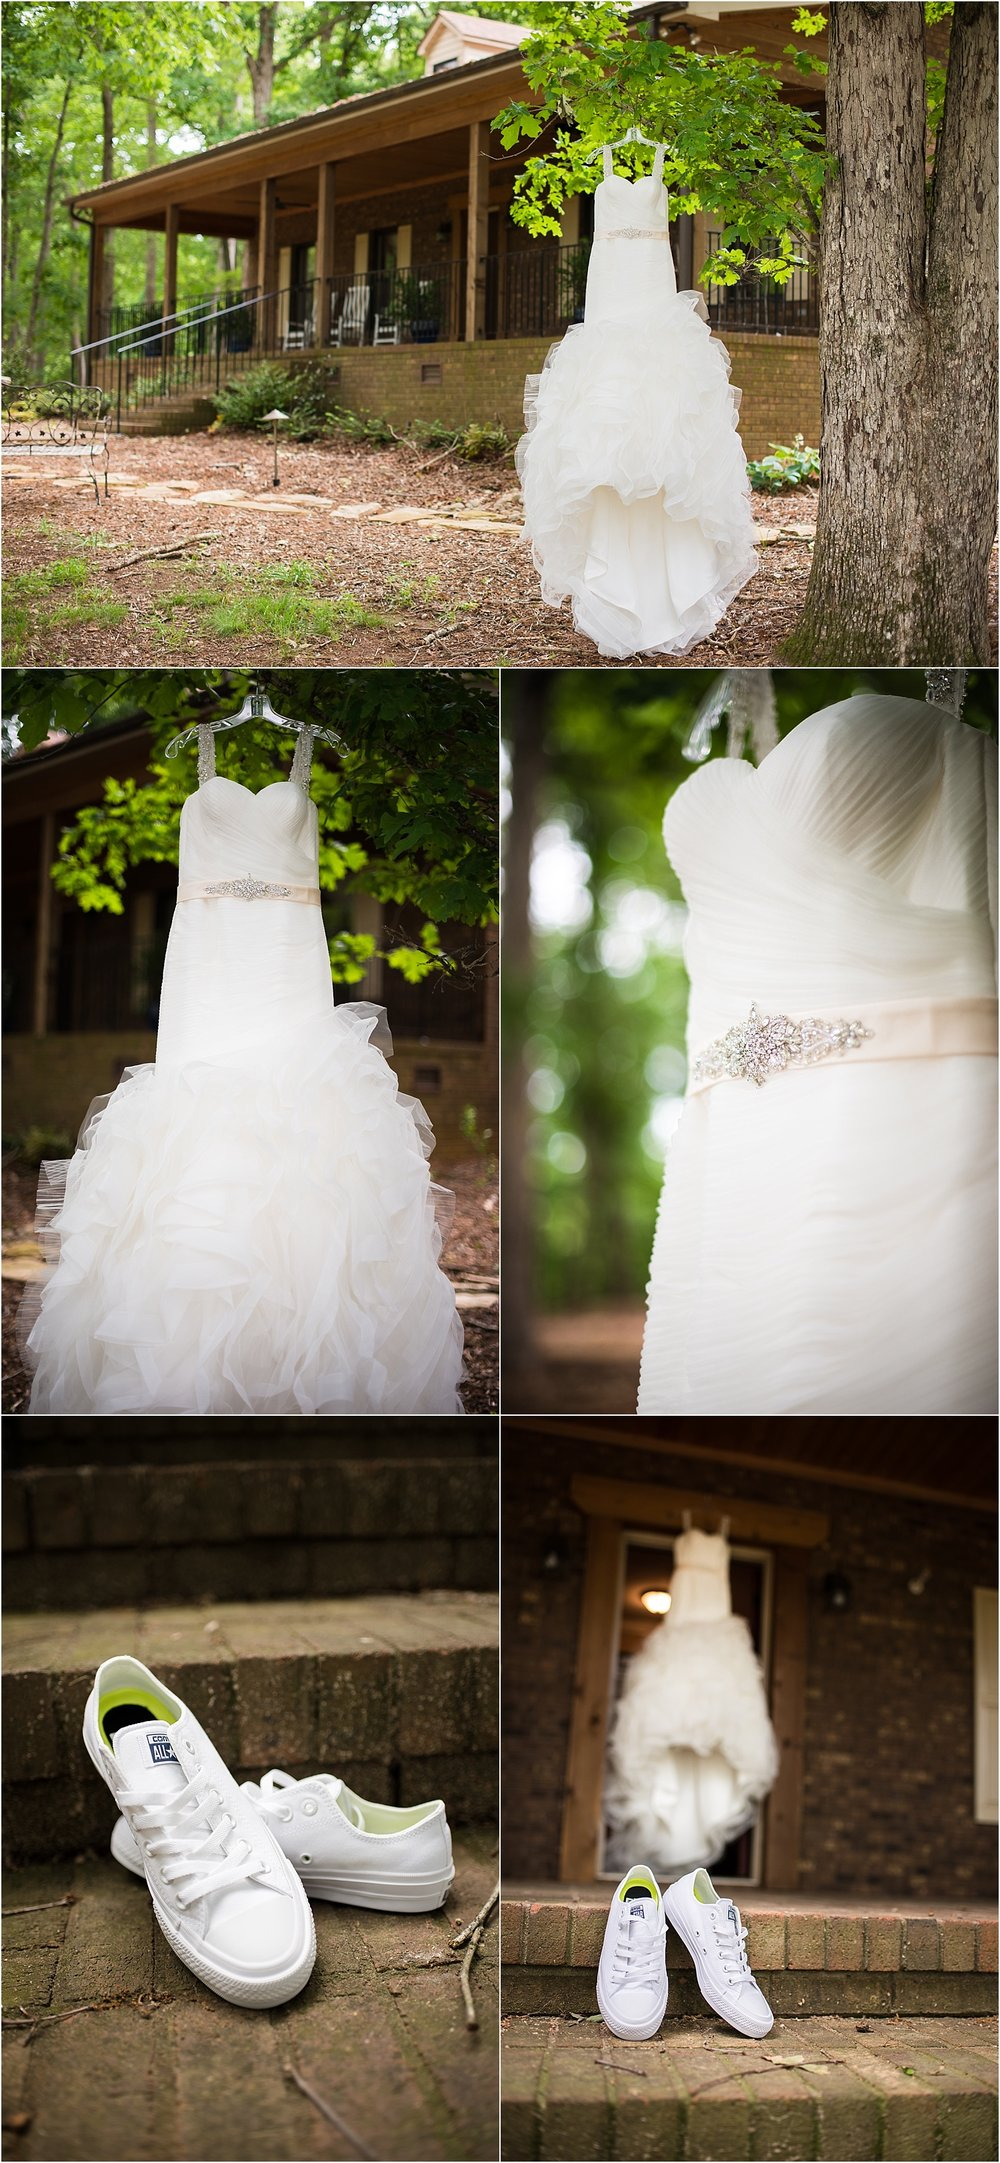 Farm-at-busharbor-casual-laid-back-rustic-bridal-details-concord-wedding-center